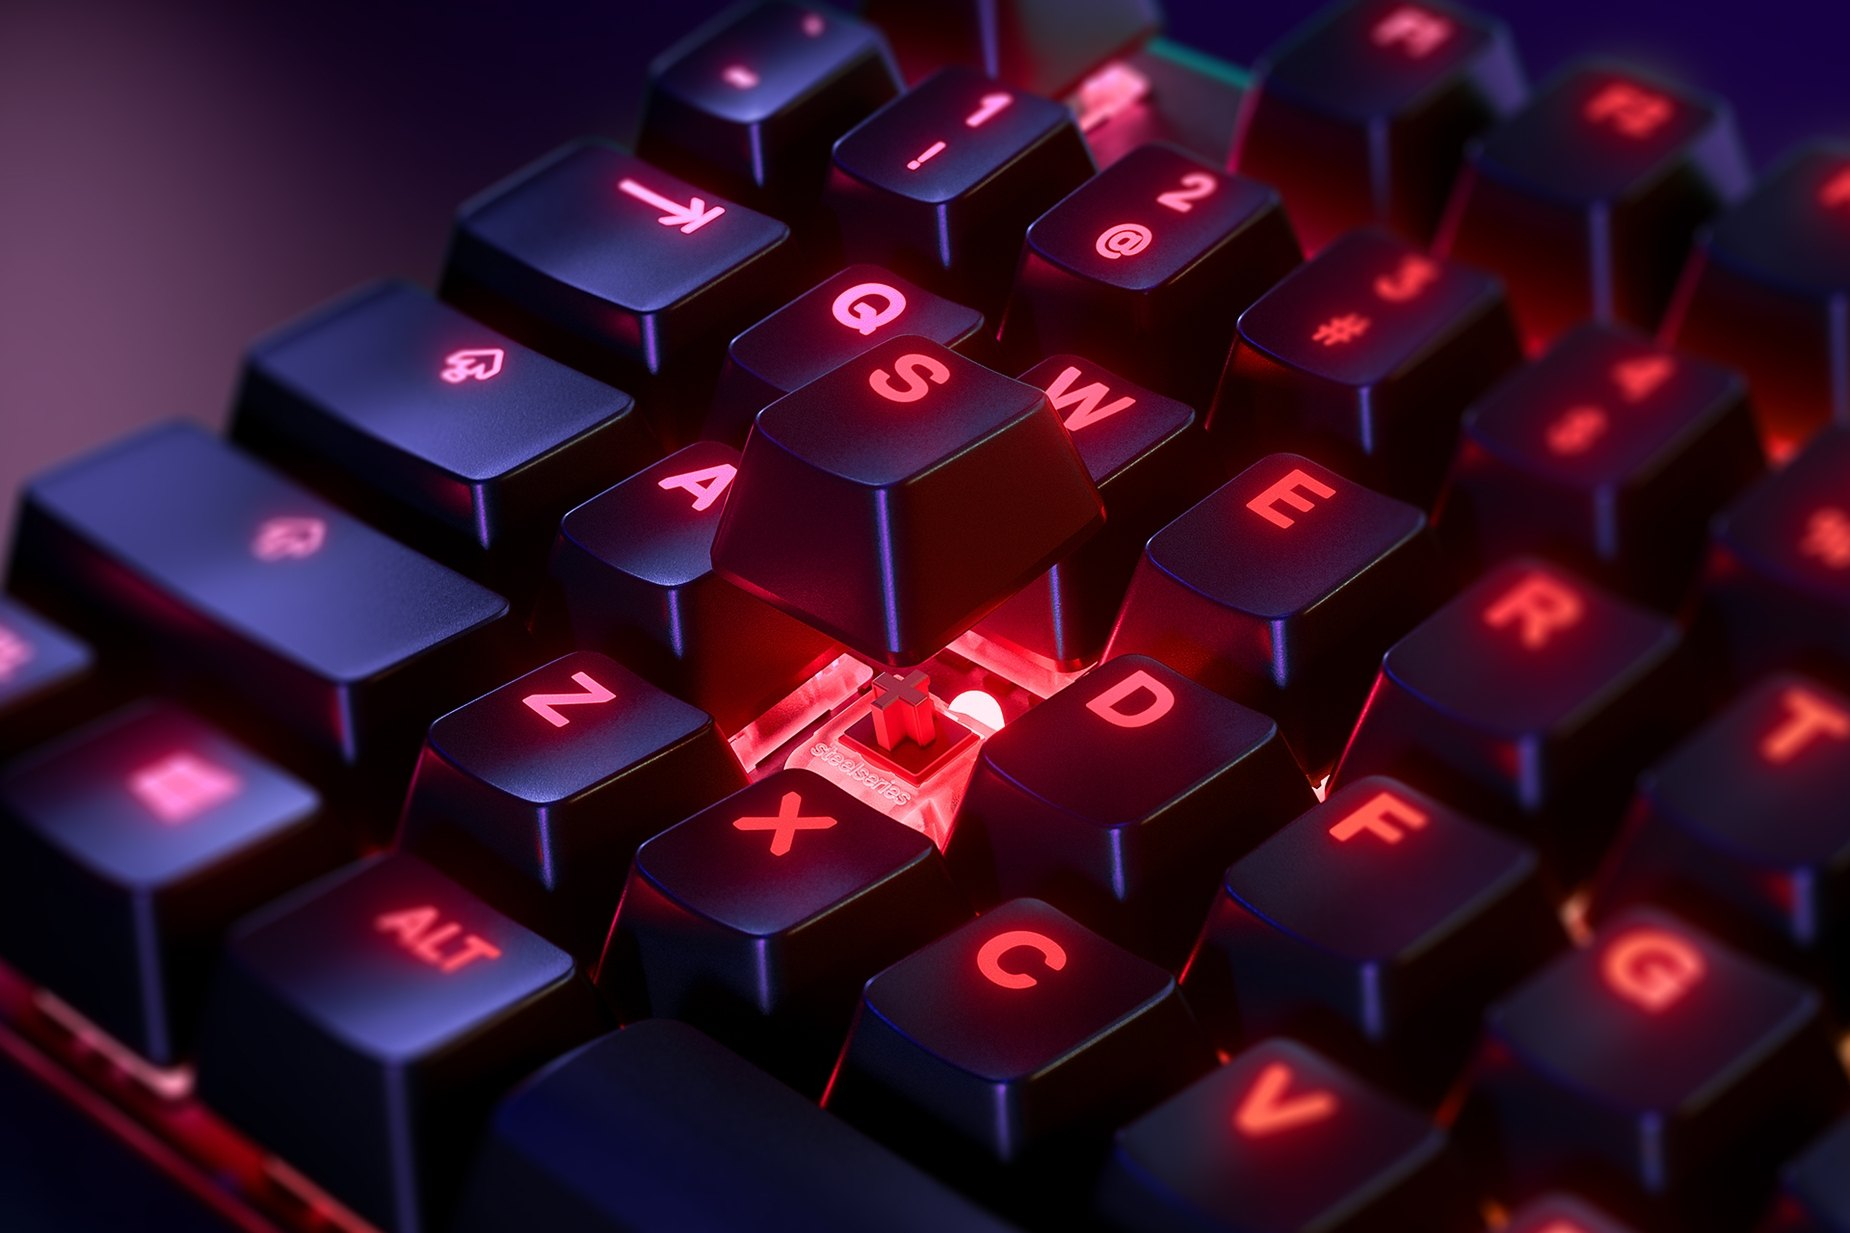 Zoomed in view of a single key on the Taiwanese - Apex 7 (Red Switch) gaming keyboard, the key is raised up to show the SteelSeries QX2 Mechanical RGB Switch underneath